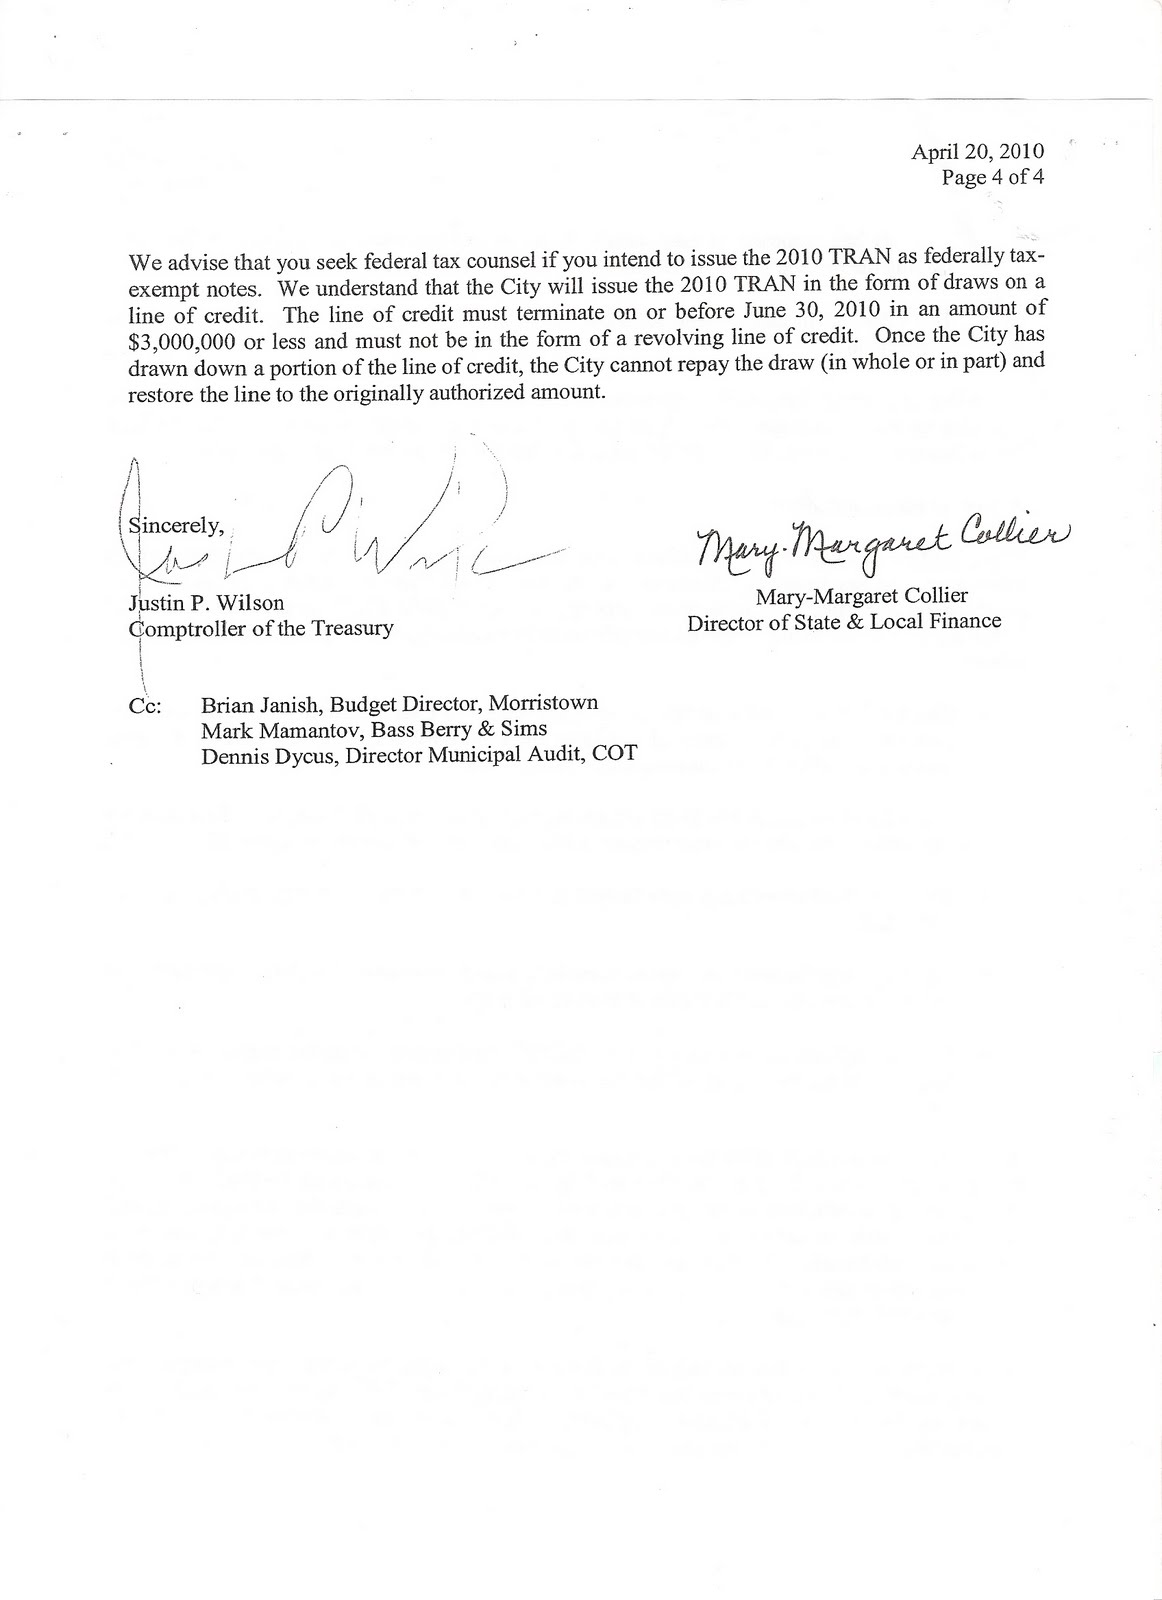 letter to mayor barile on city 39 s violations of state law and audit